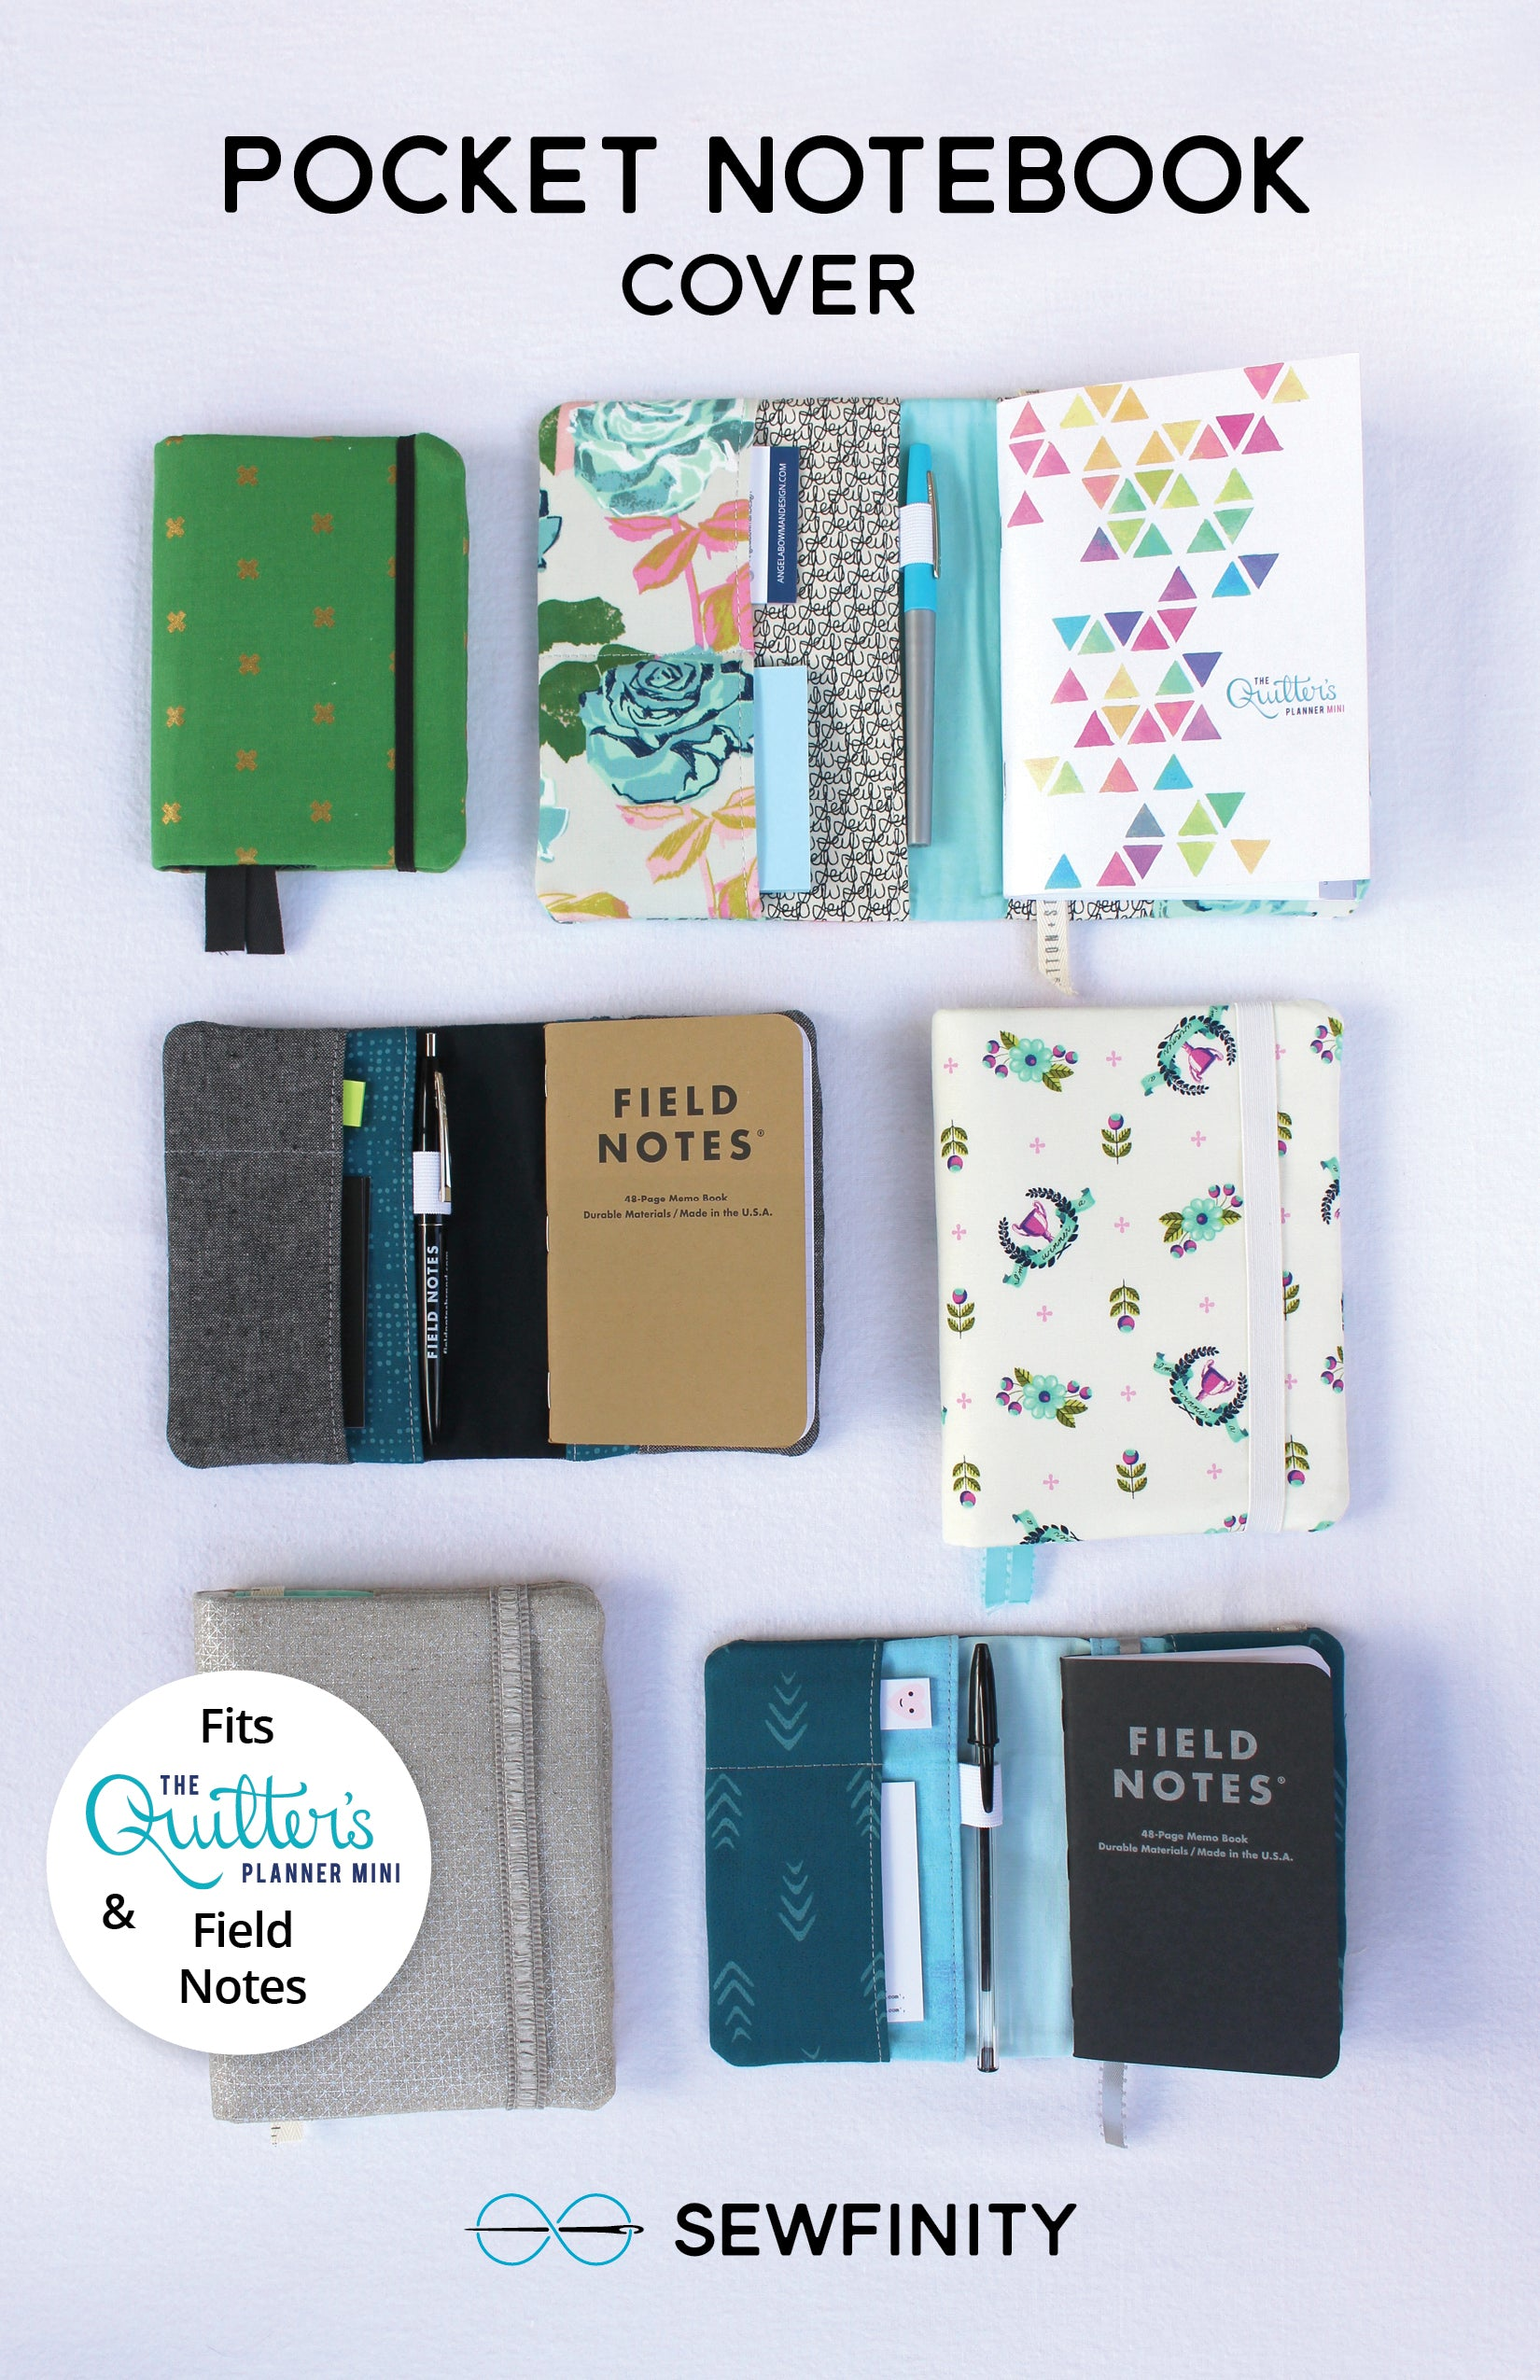 Pocket Notebook Cover Sewing Pattern by Sewfinity